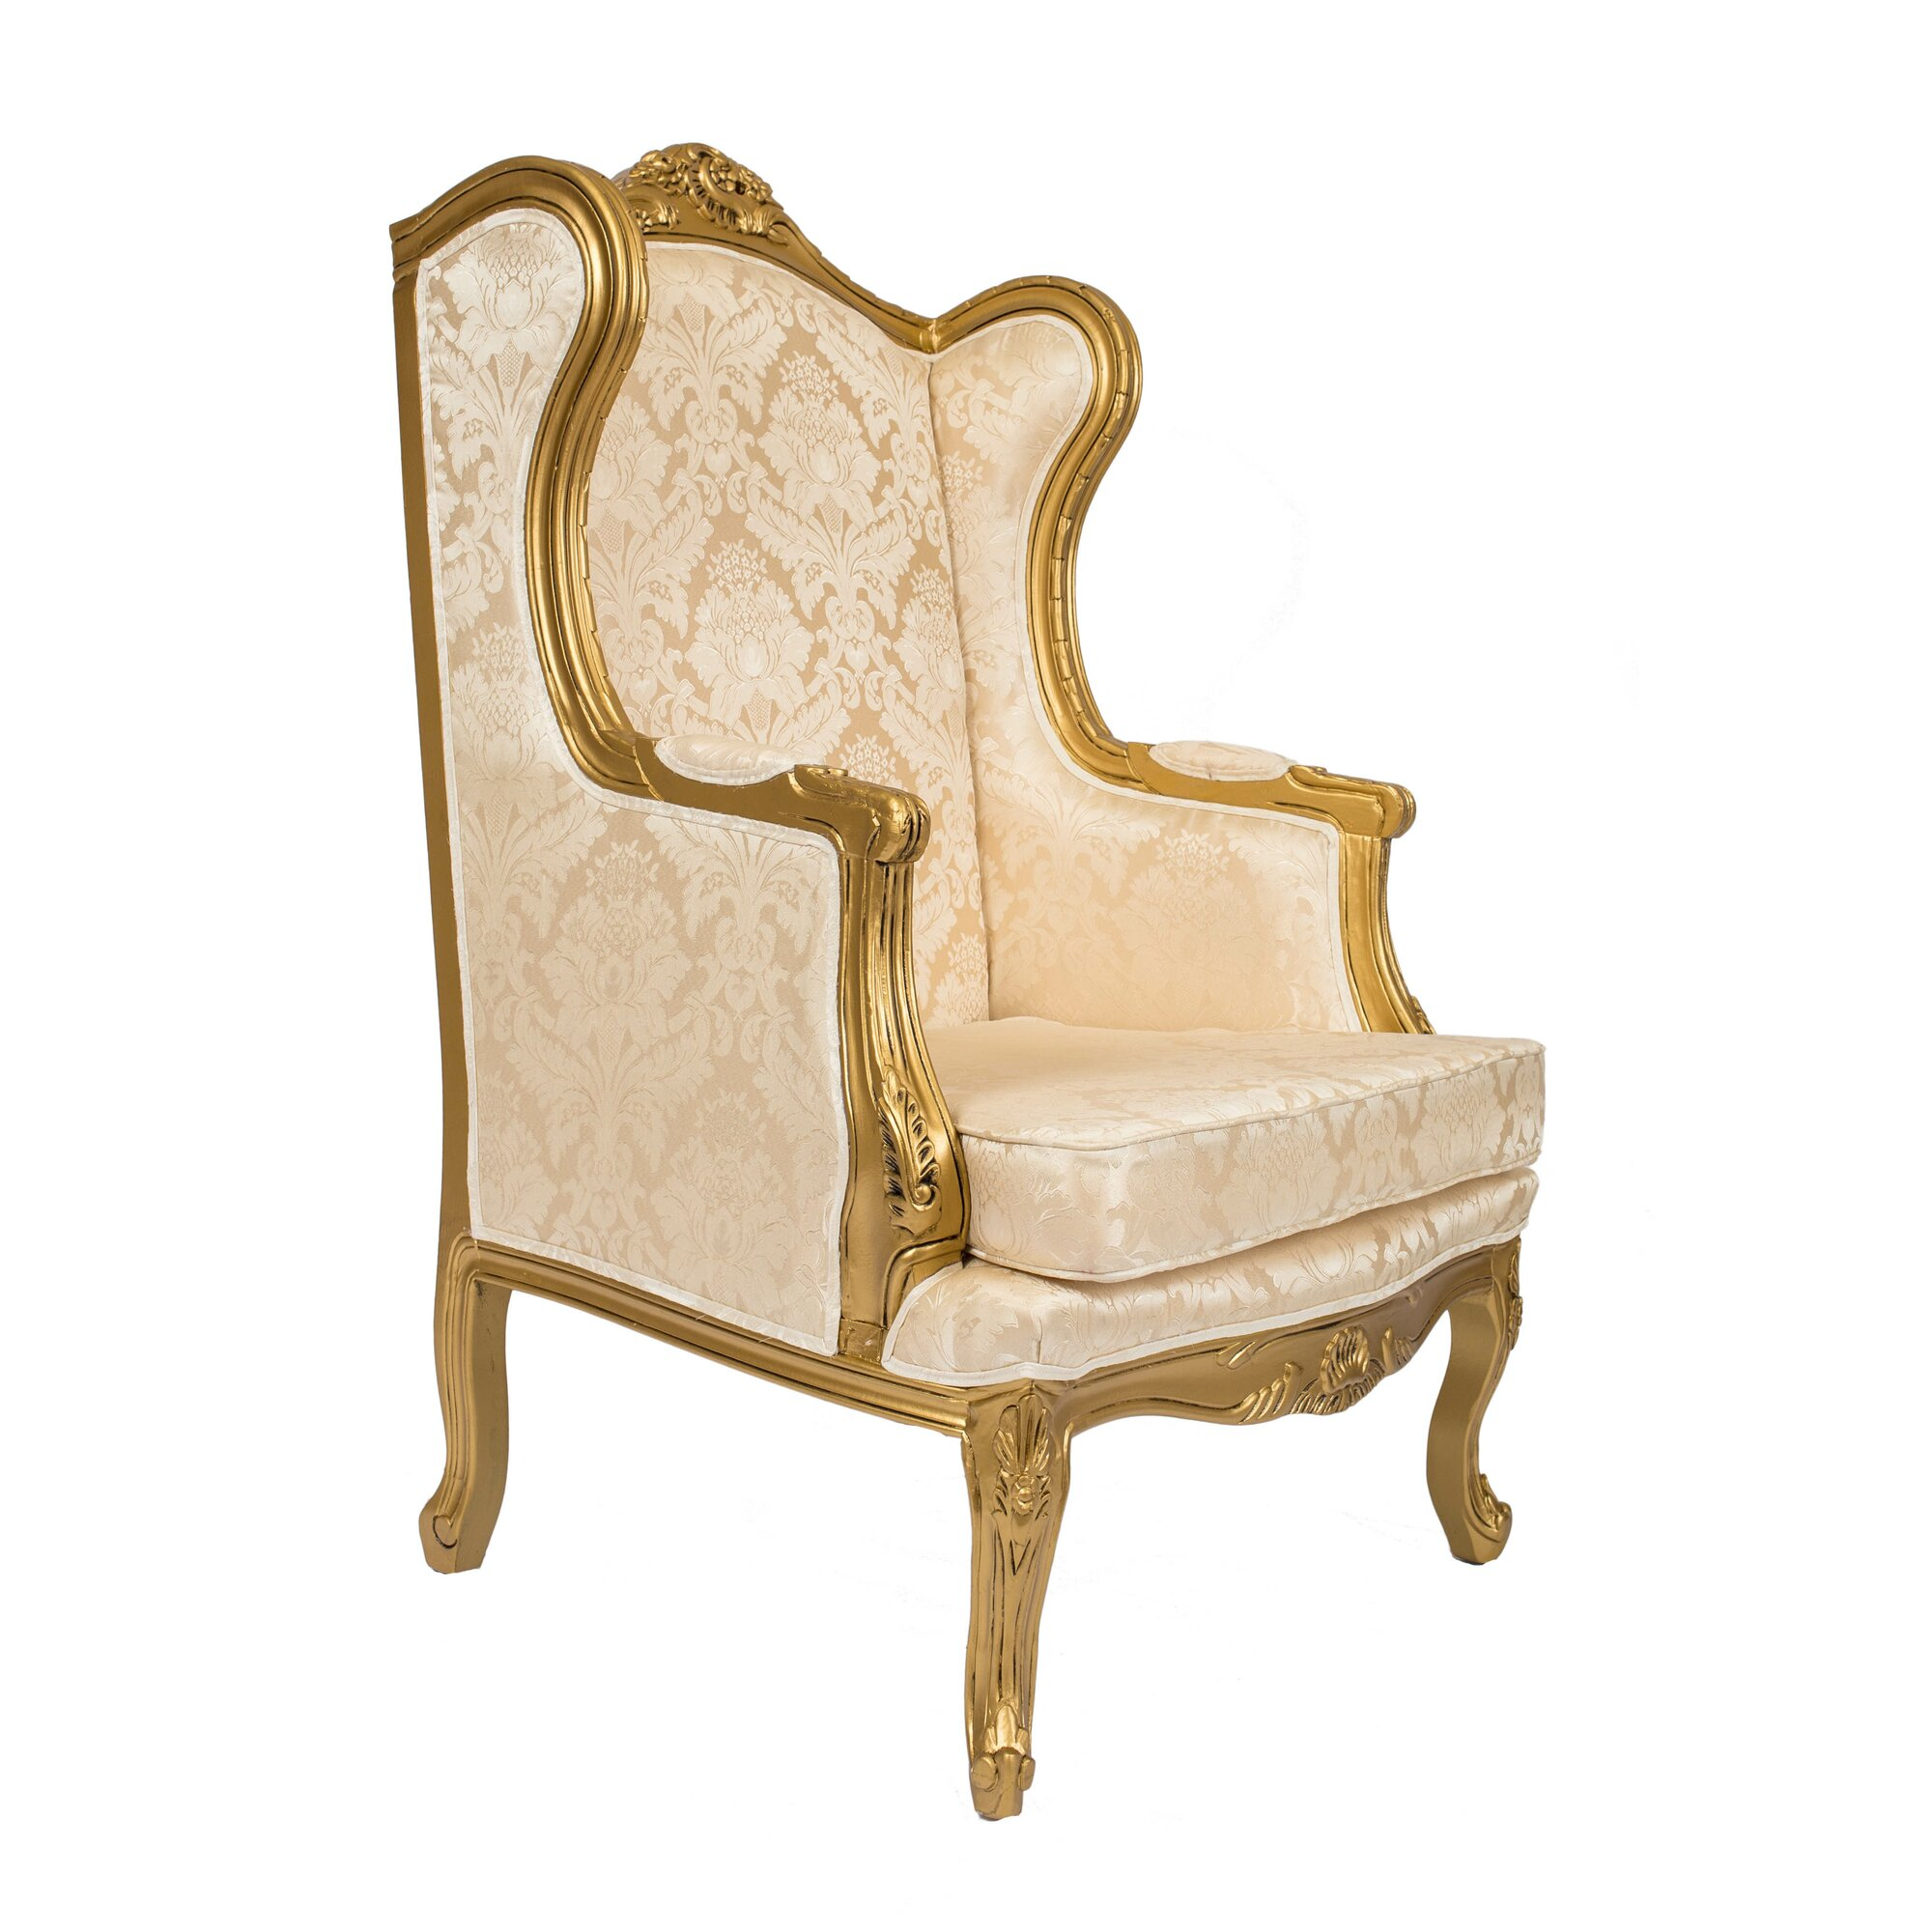 Queen Anne Wingback Chair : www.imgkid.com - The Image Kid Has It!